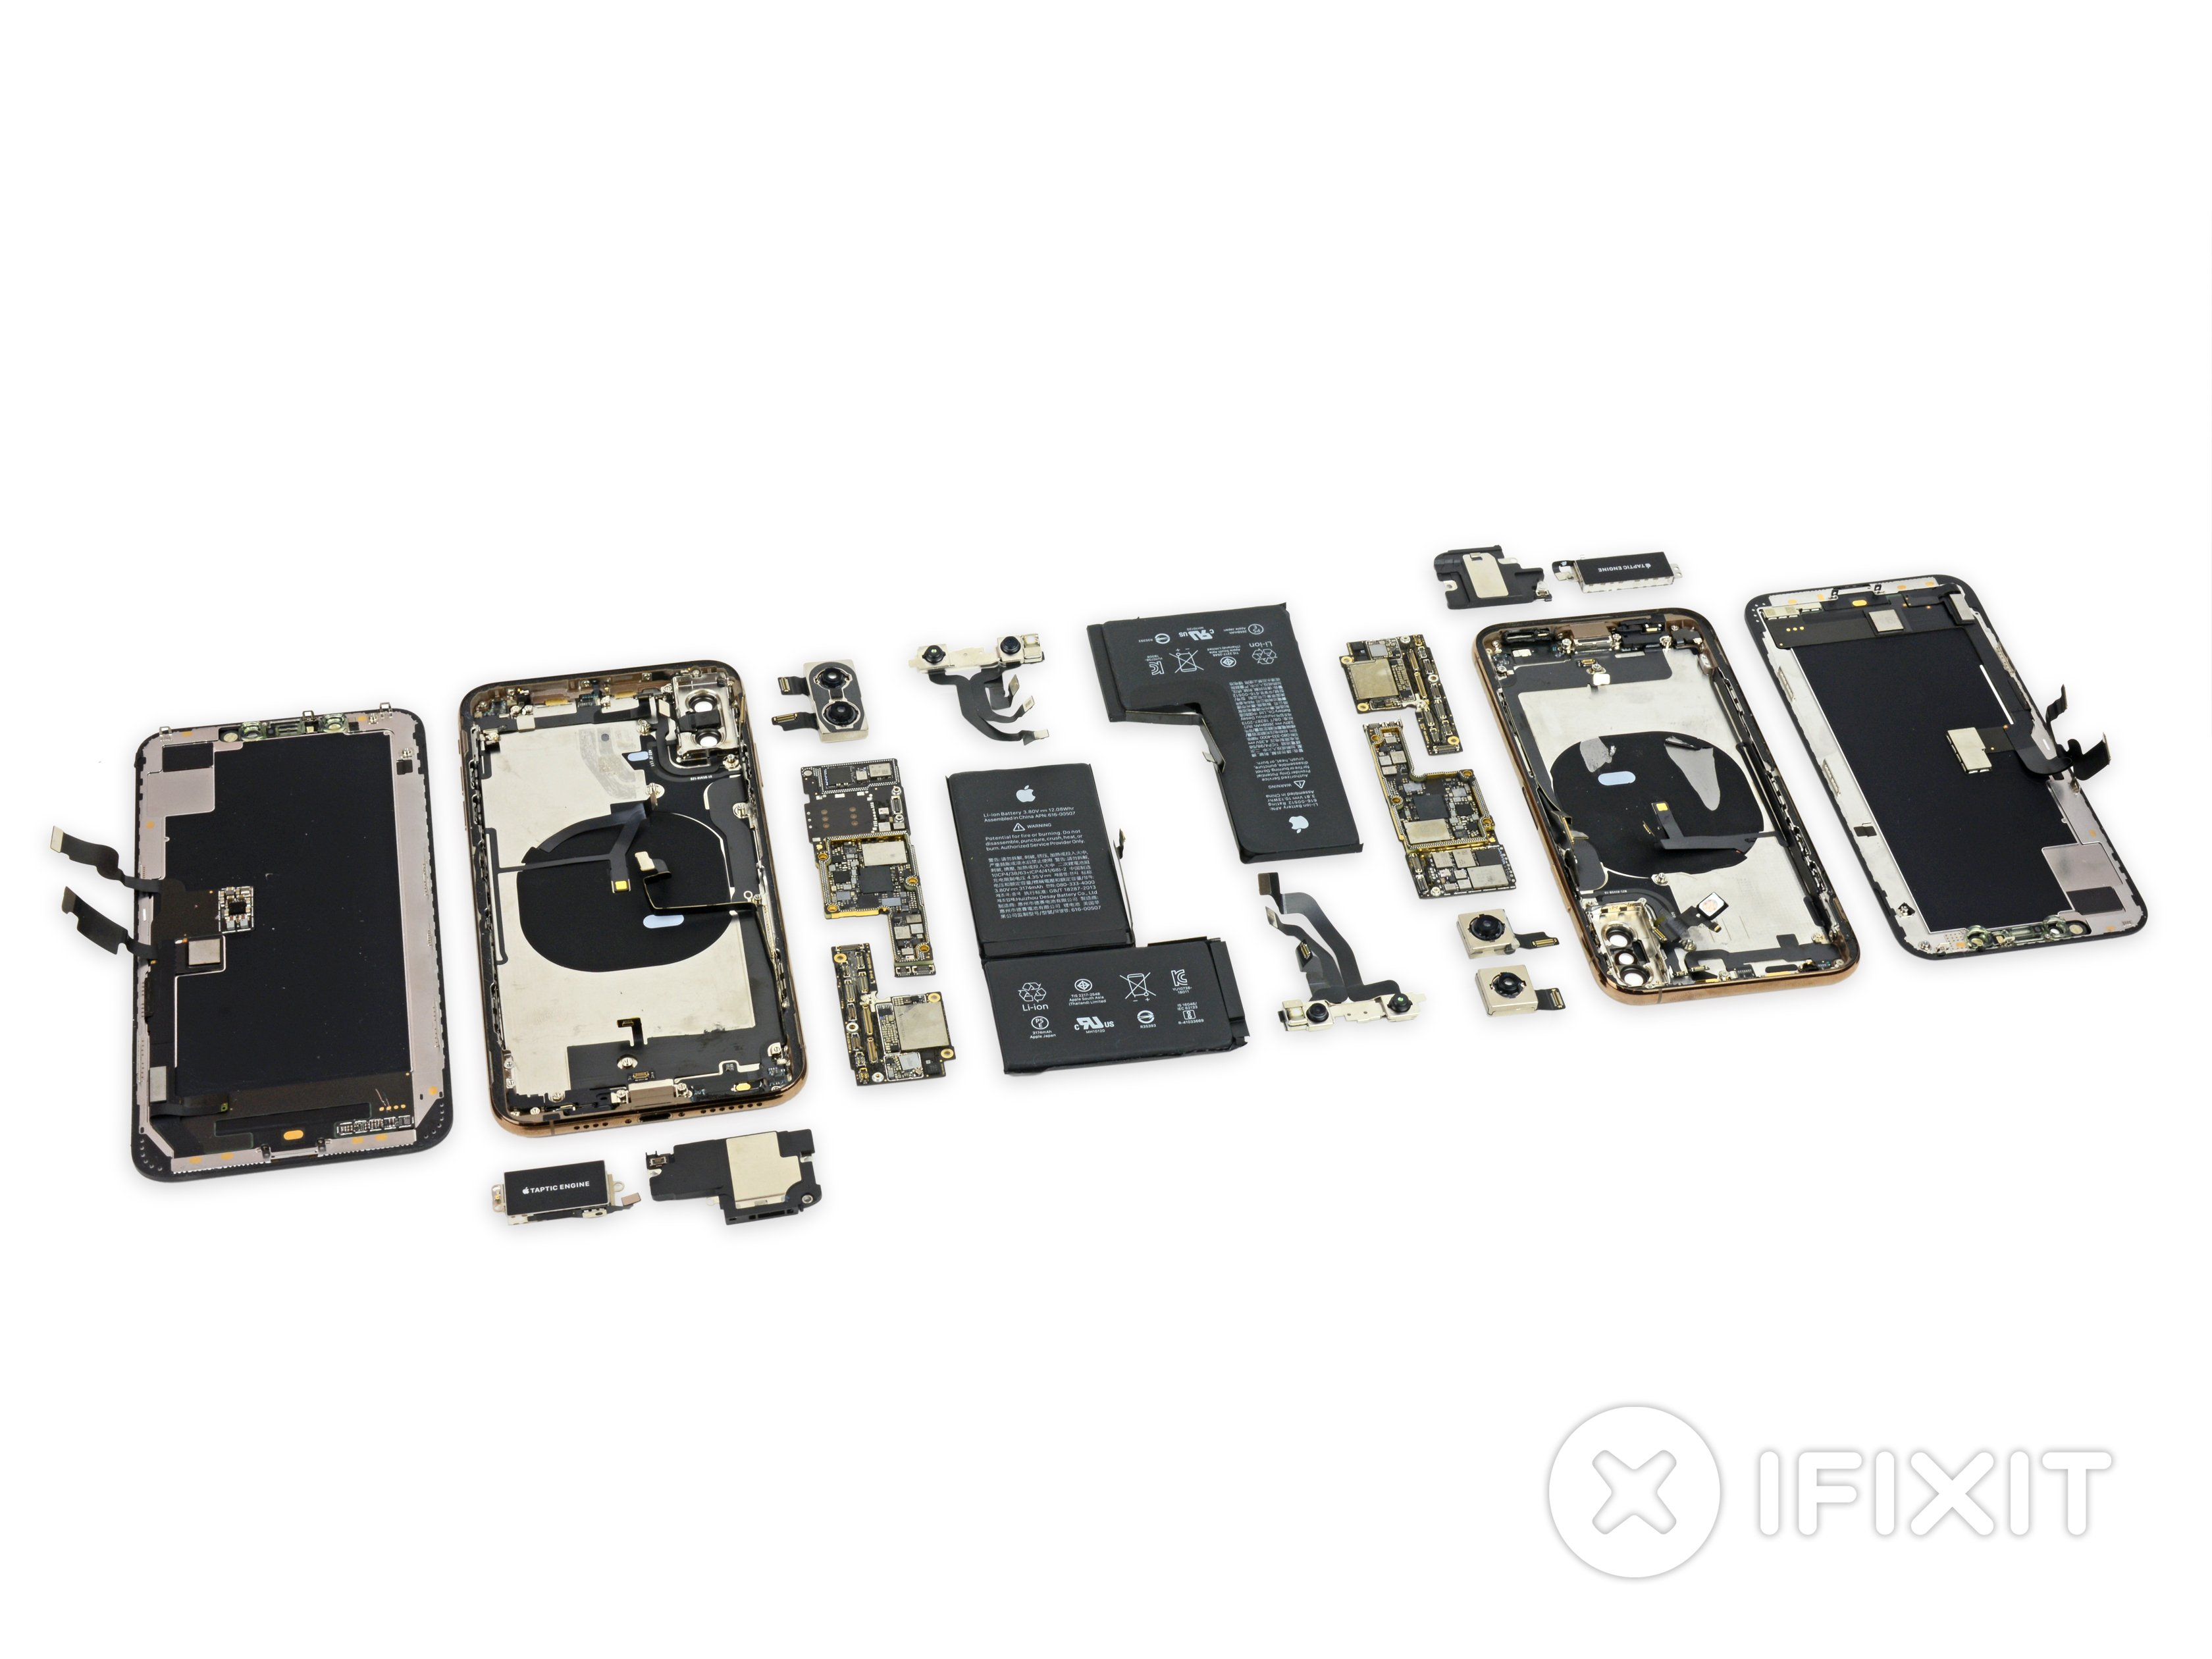 Feu De Cheminee En Anglais Iphone Xs And Xs Max Teardown Ifixit